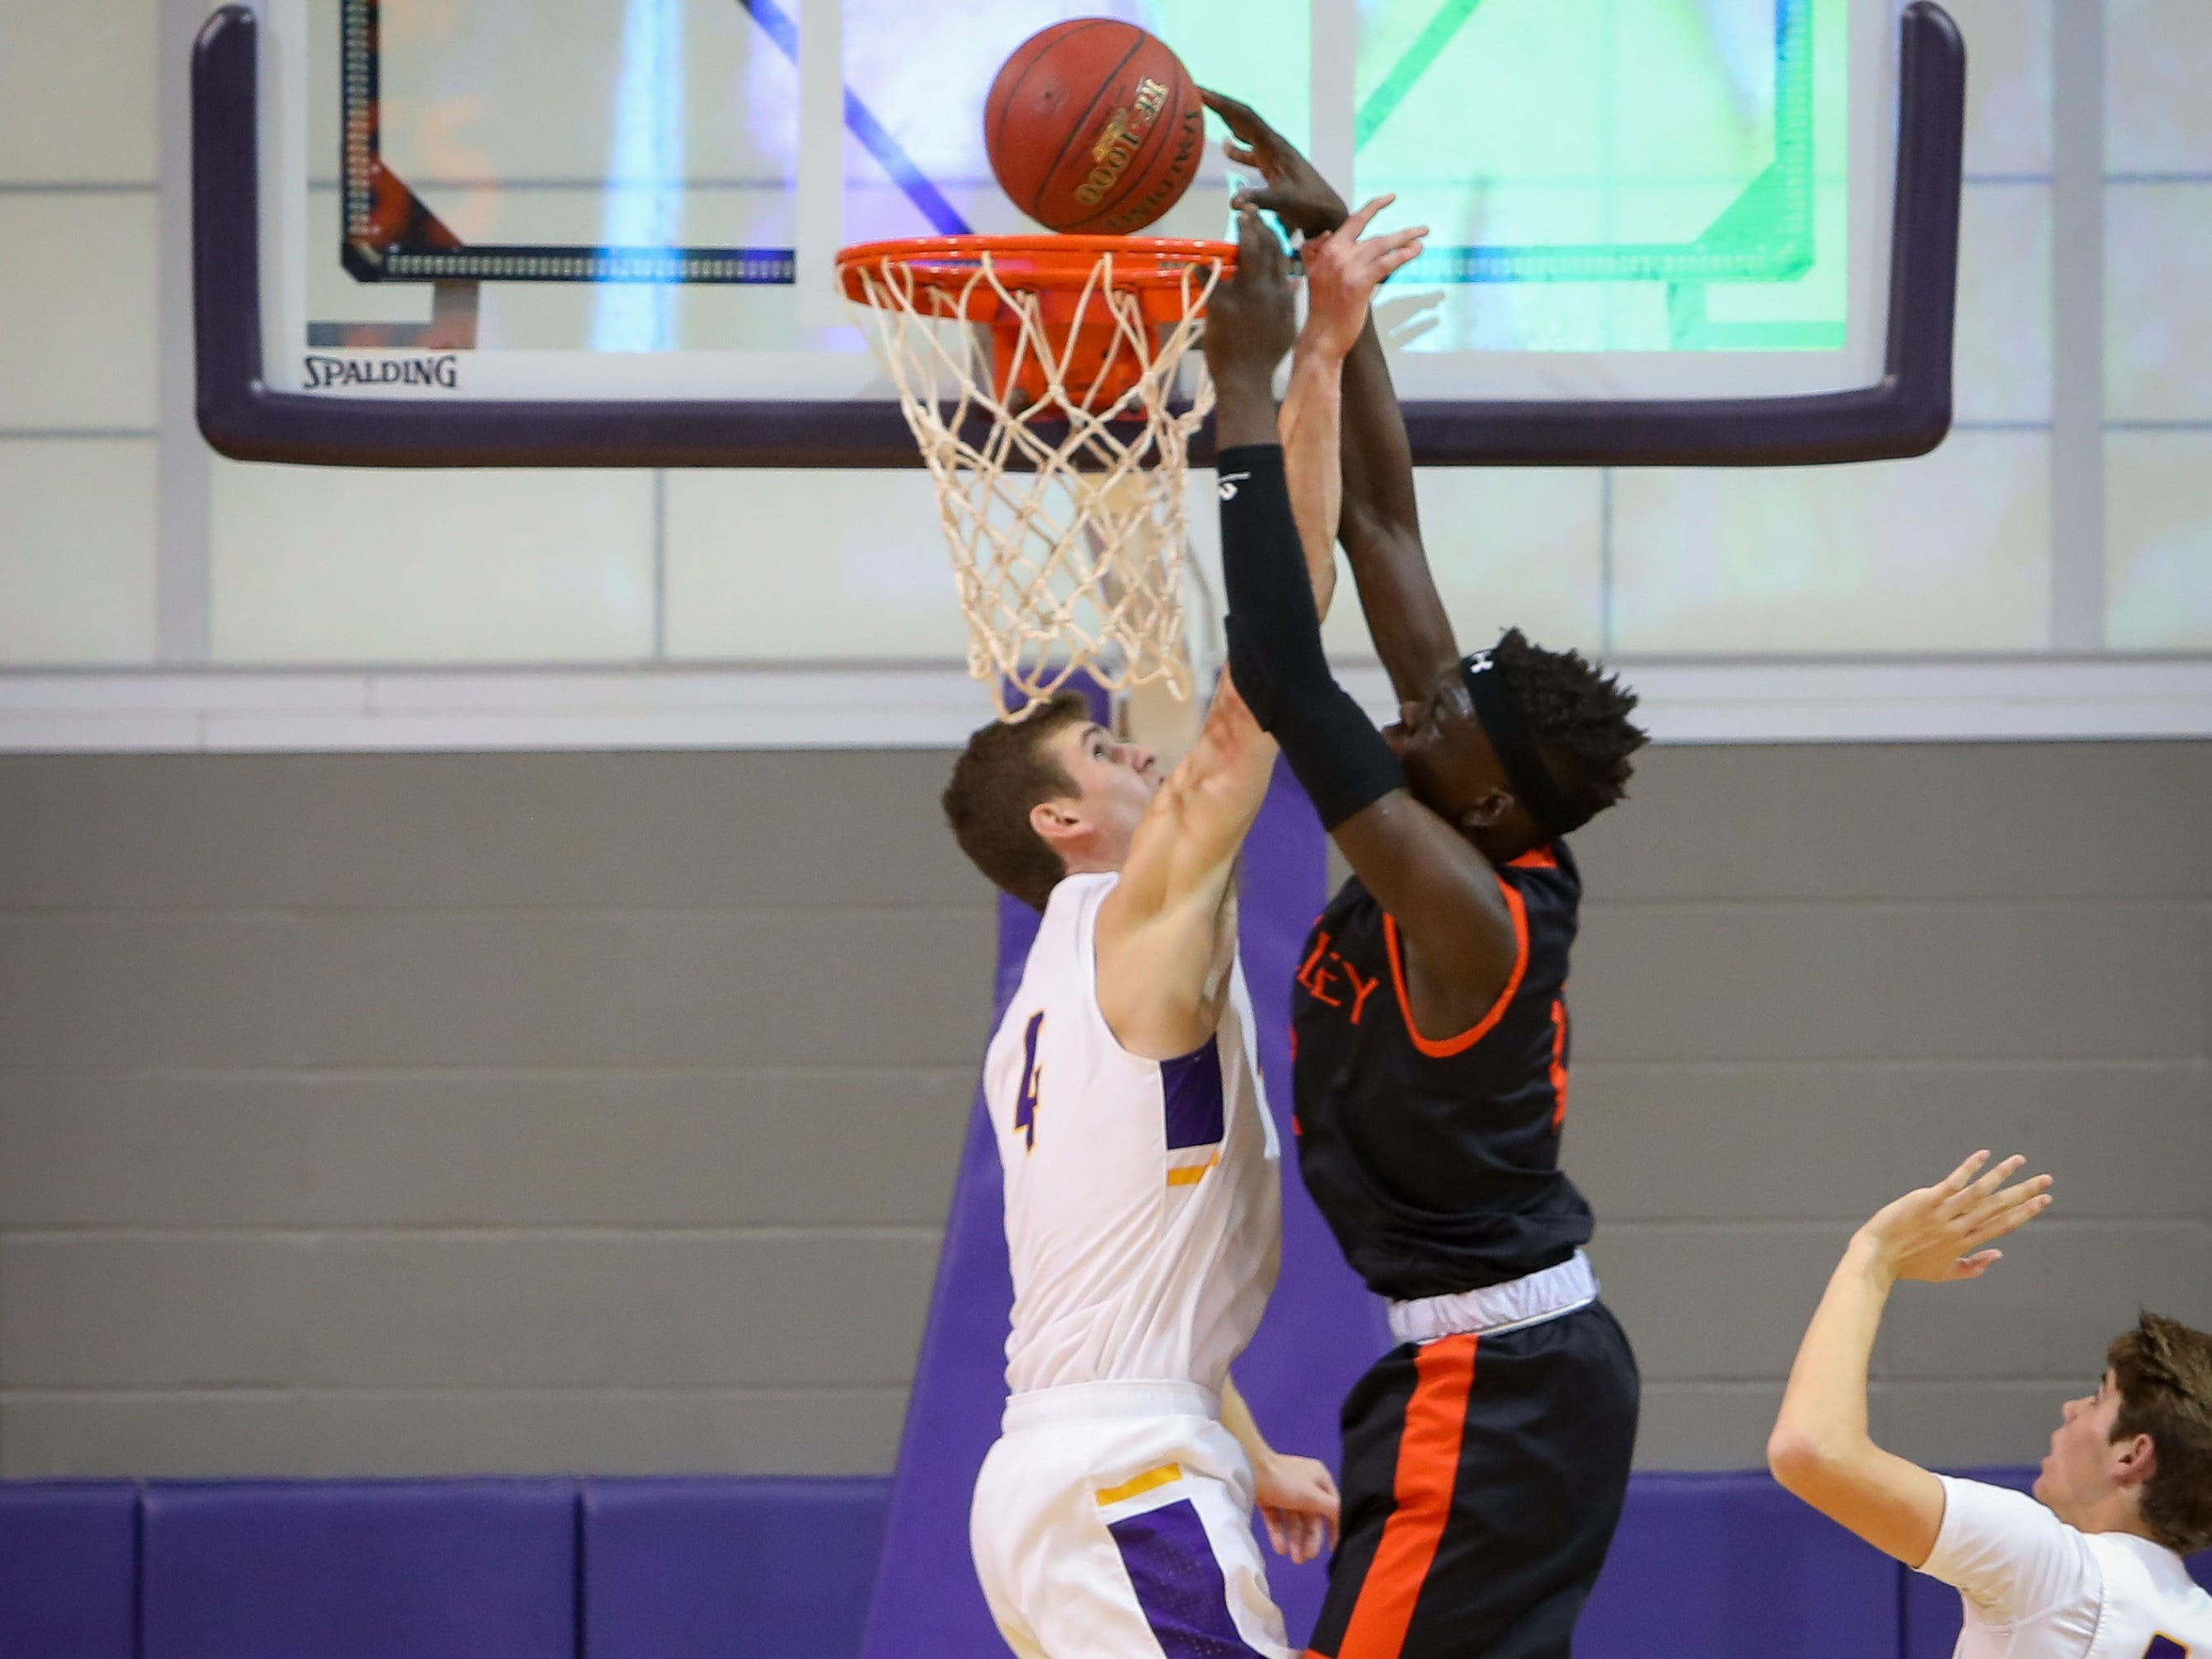 Valley senior Aguek Deng goes for a slam dunk over Waukee senior Dylan Jones during a boys high school basketball game between the Valley Tigers and the Waukee Warriors at Waukee High School on Dec. 14, 2018 in Waukee, Iowa.